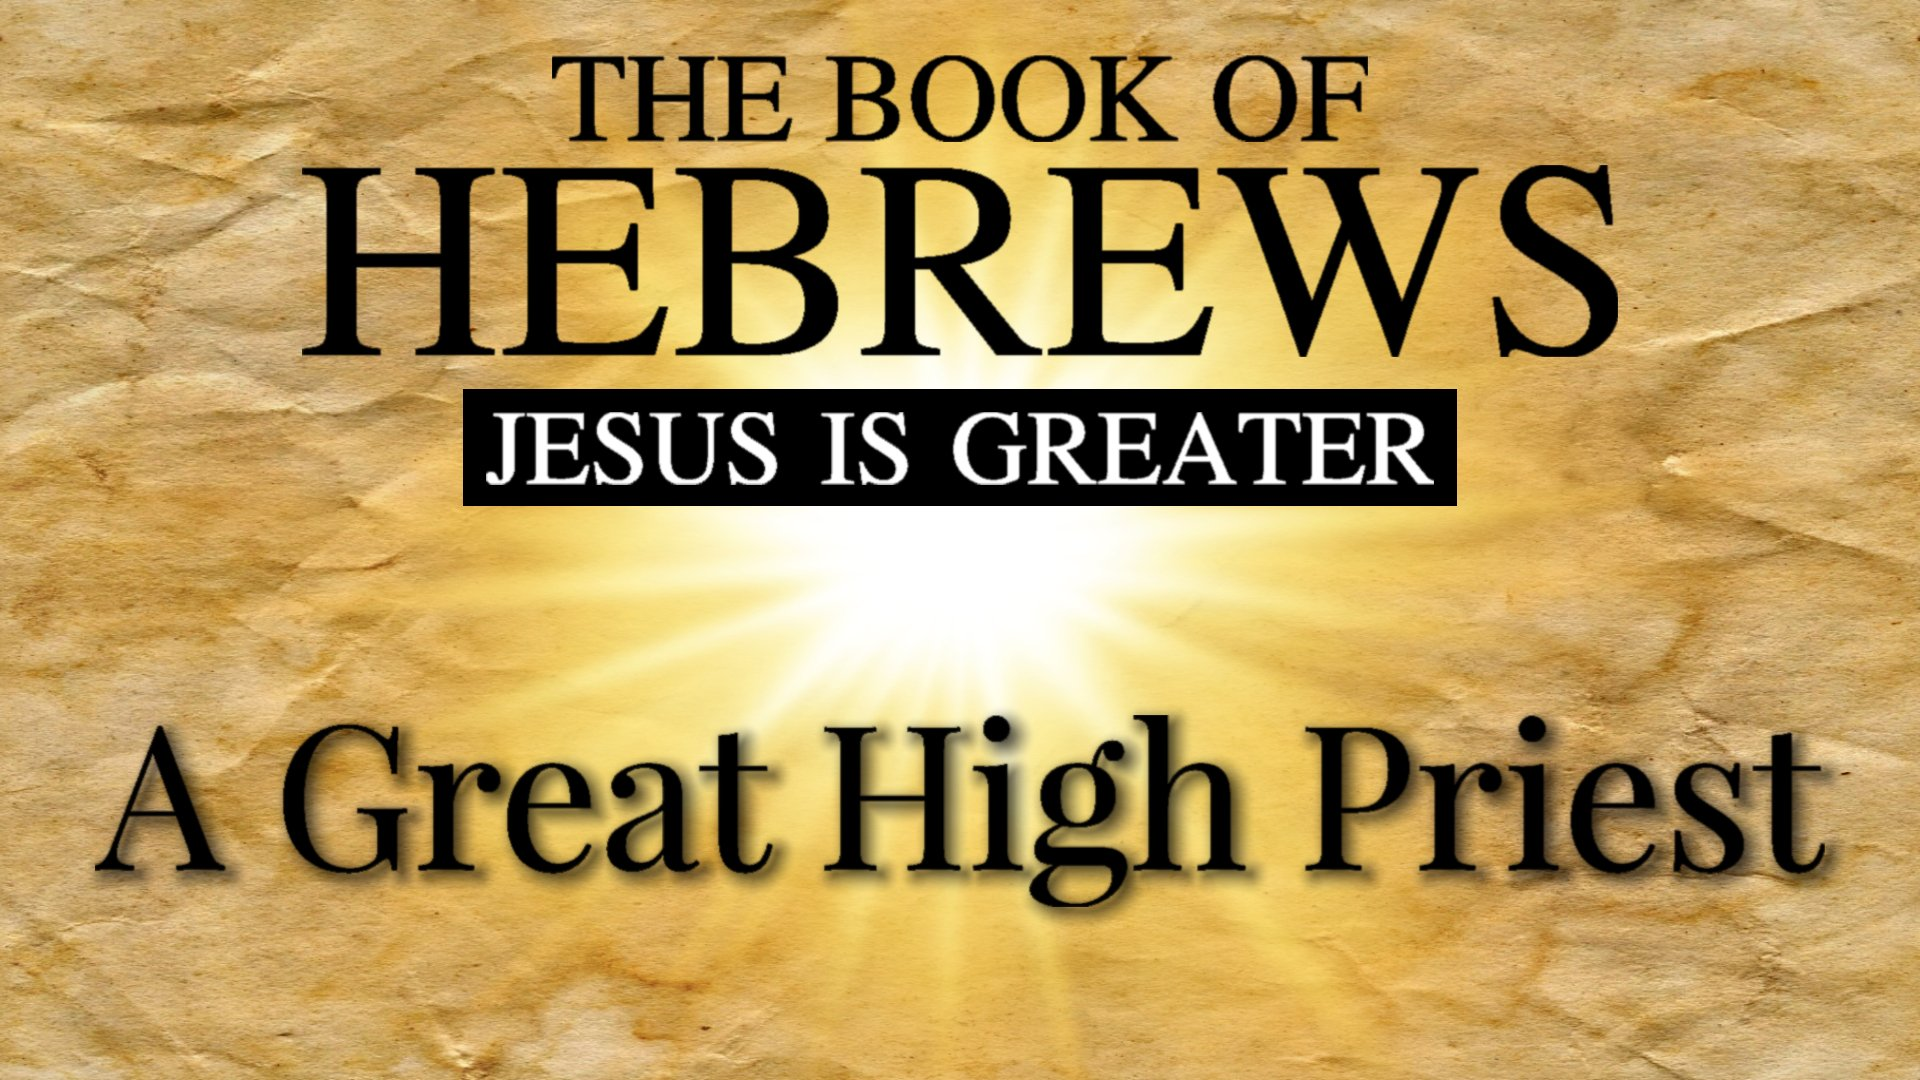 10 A Great High Priest